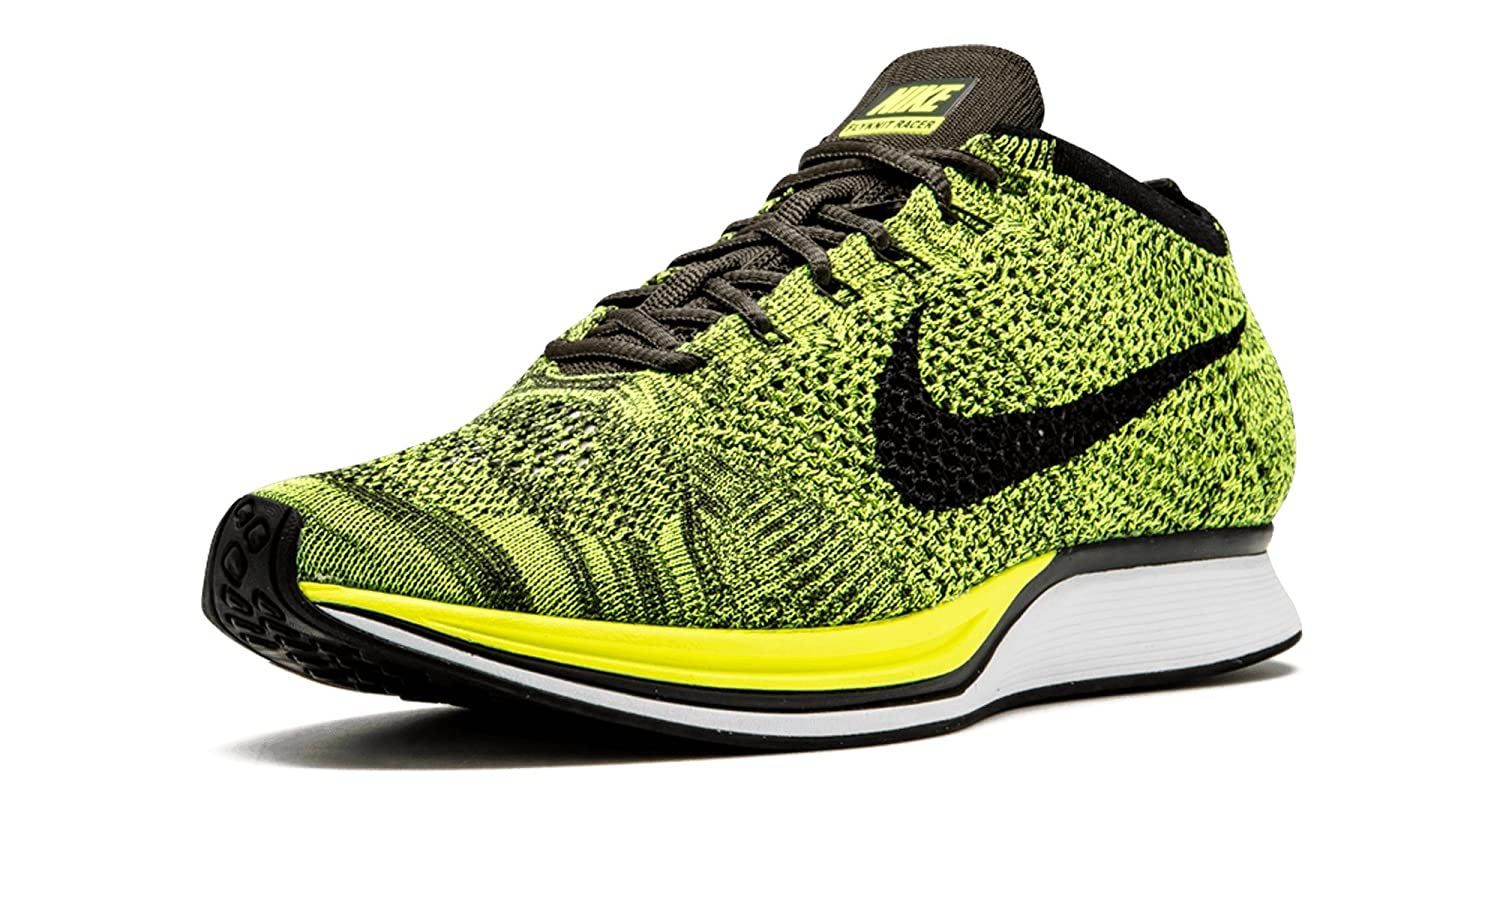 the best attitude 8c37e 56fcb Nike Flyknit Racer - Running Shoes, Man, Color Green (Volt Black-Sequoia),  Size 39  Amazon.co.uk  Shoes   Bags